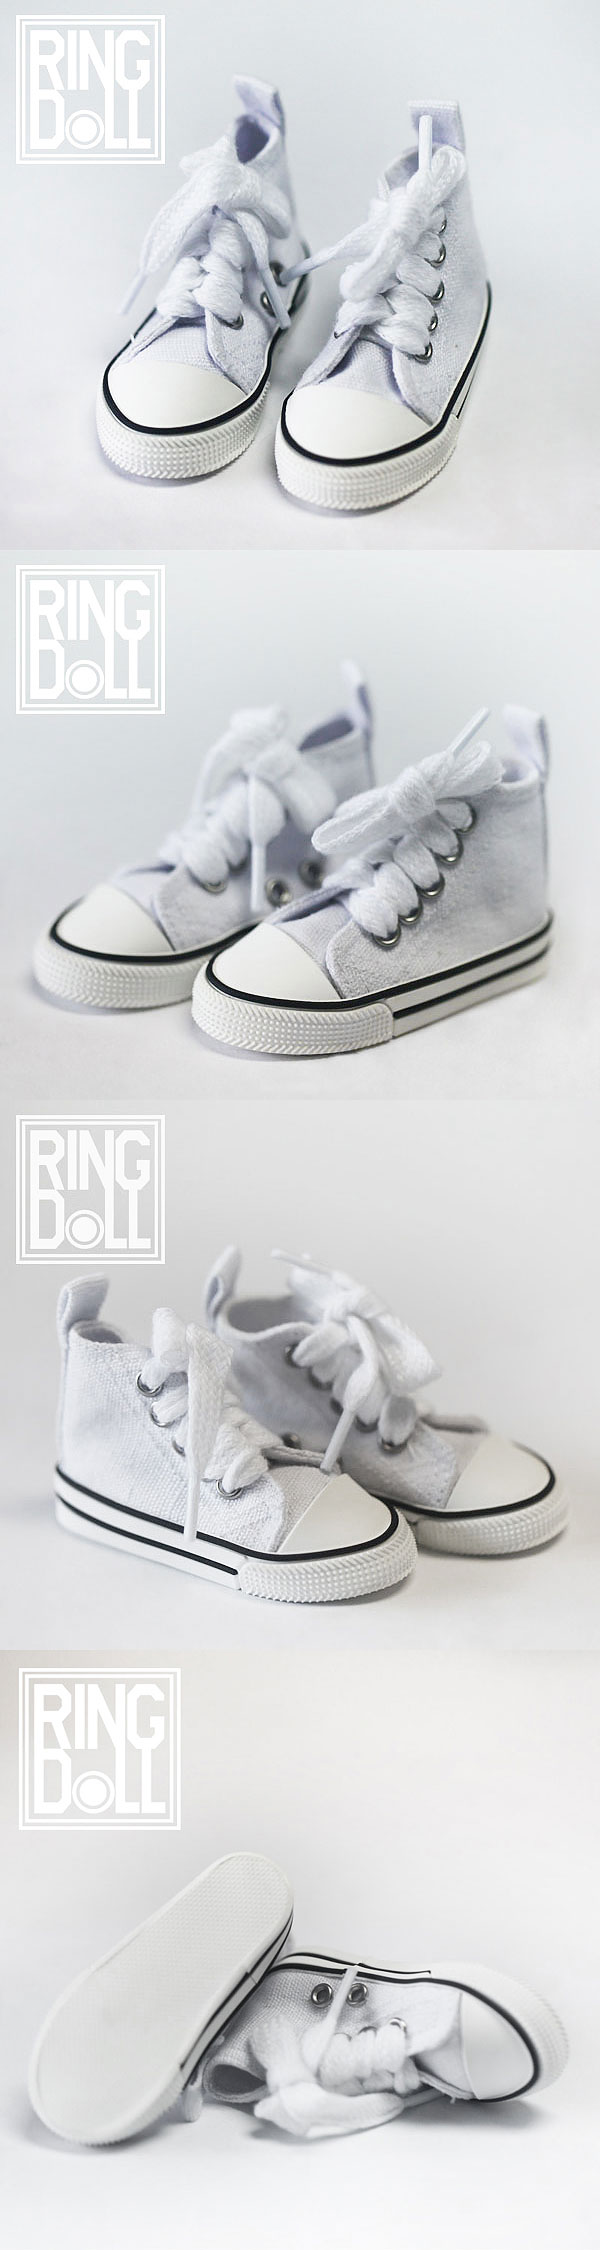 Bjd Shoes Rshoes60-20 for SD Size Ball-jointed Doll